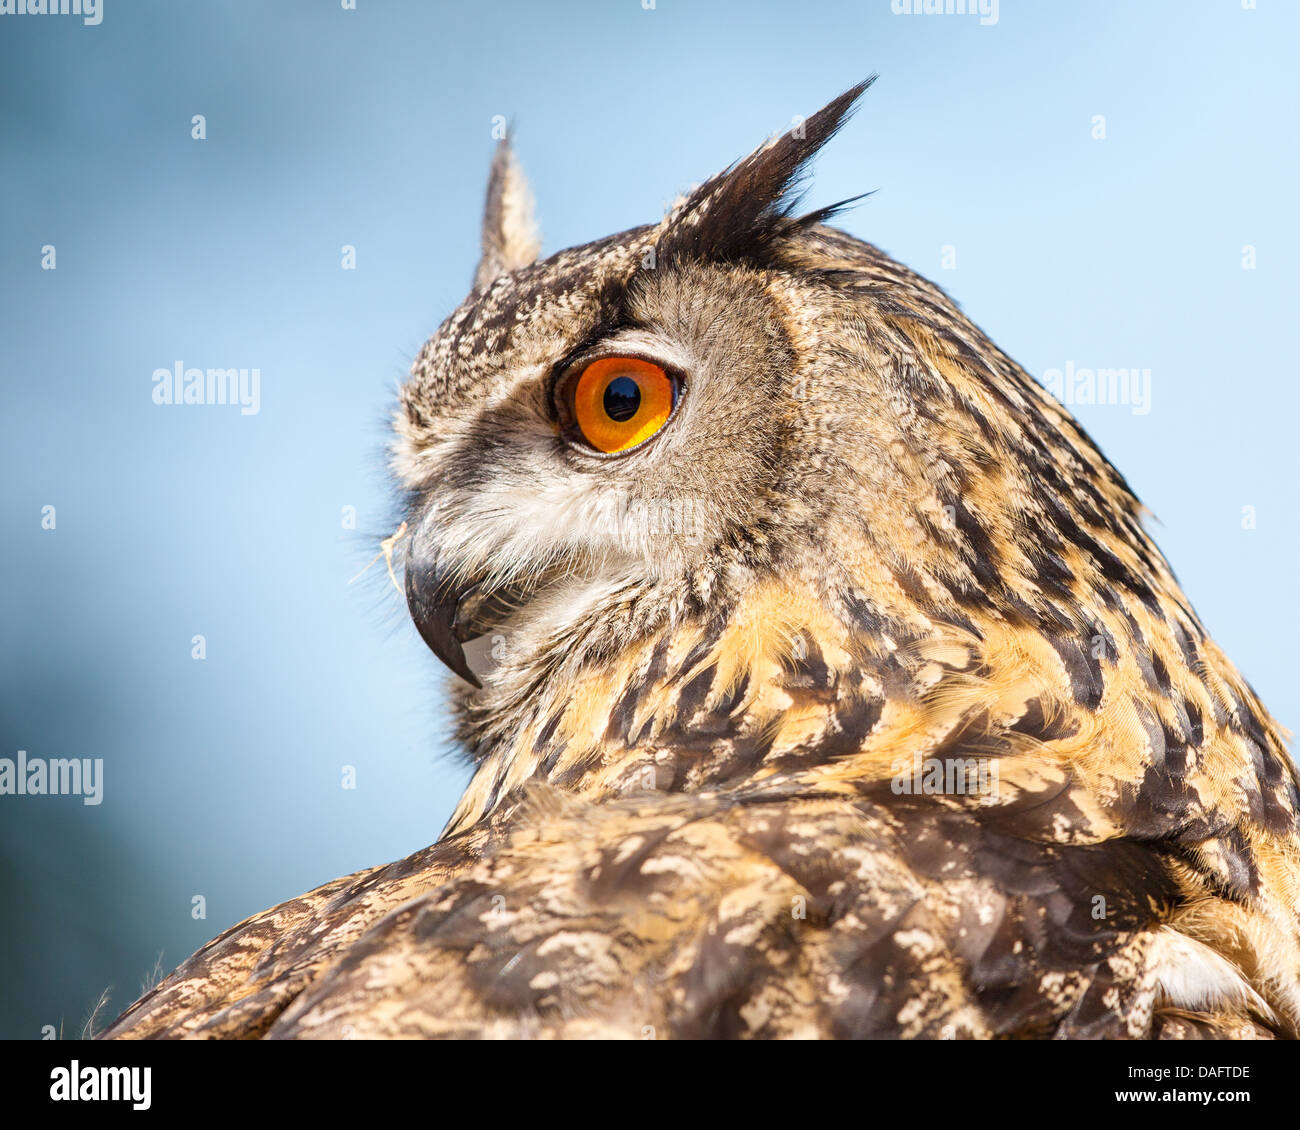 Close-up of a Eurasian Eagle- owl (Bubo bubo) showing head turned through 180 degrees against a blue sky and cloud - Stock Image